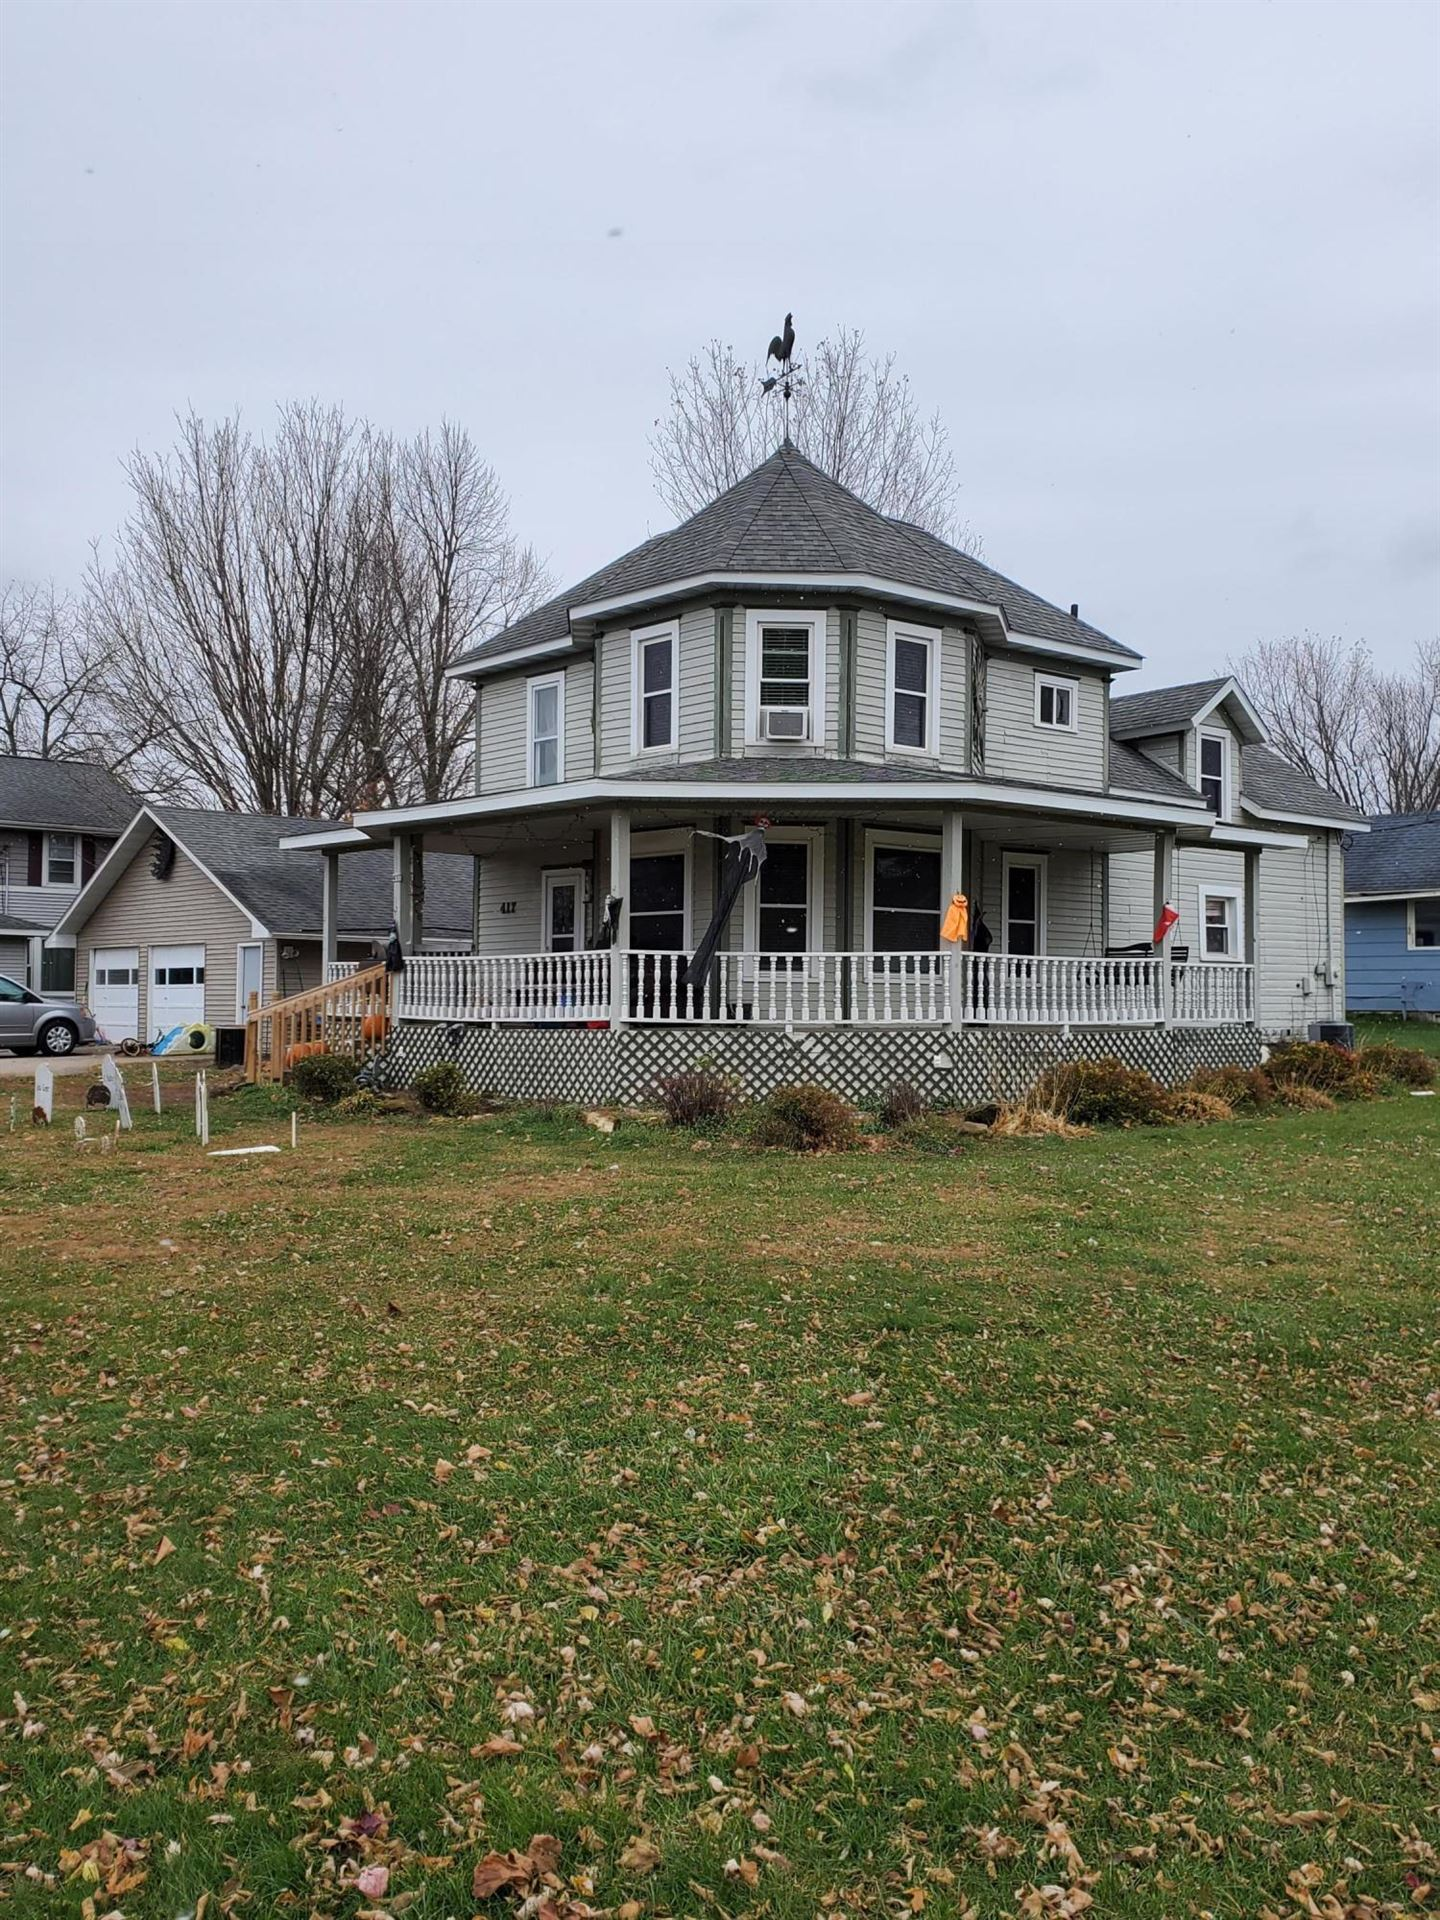 417 W 2nd St, Blair, WI 54616 - MLS#: 1715512